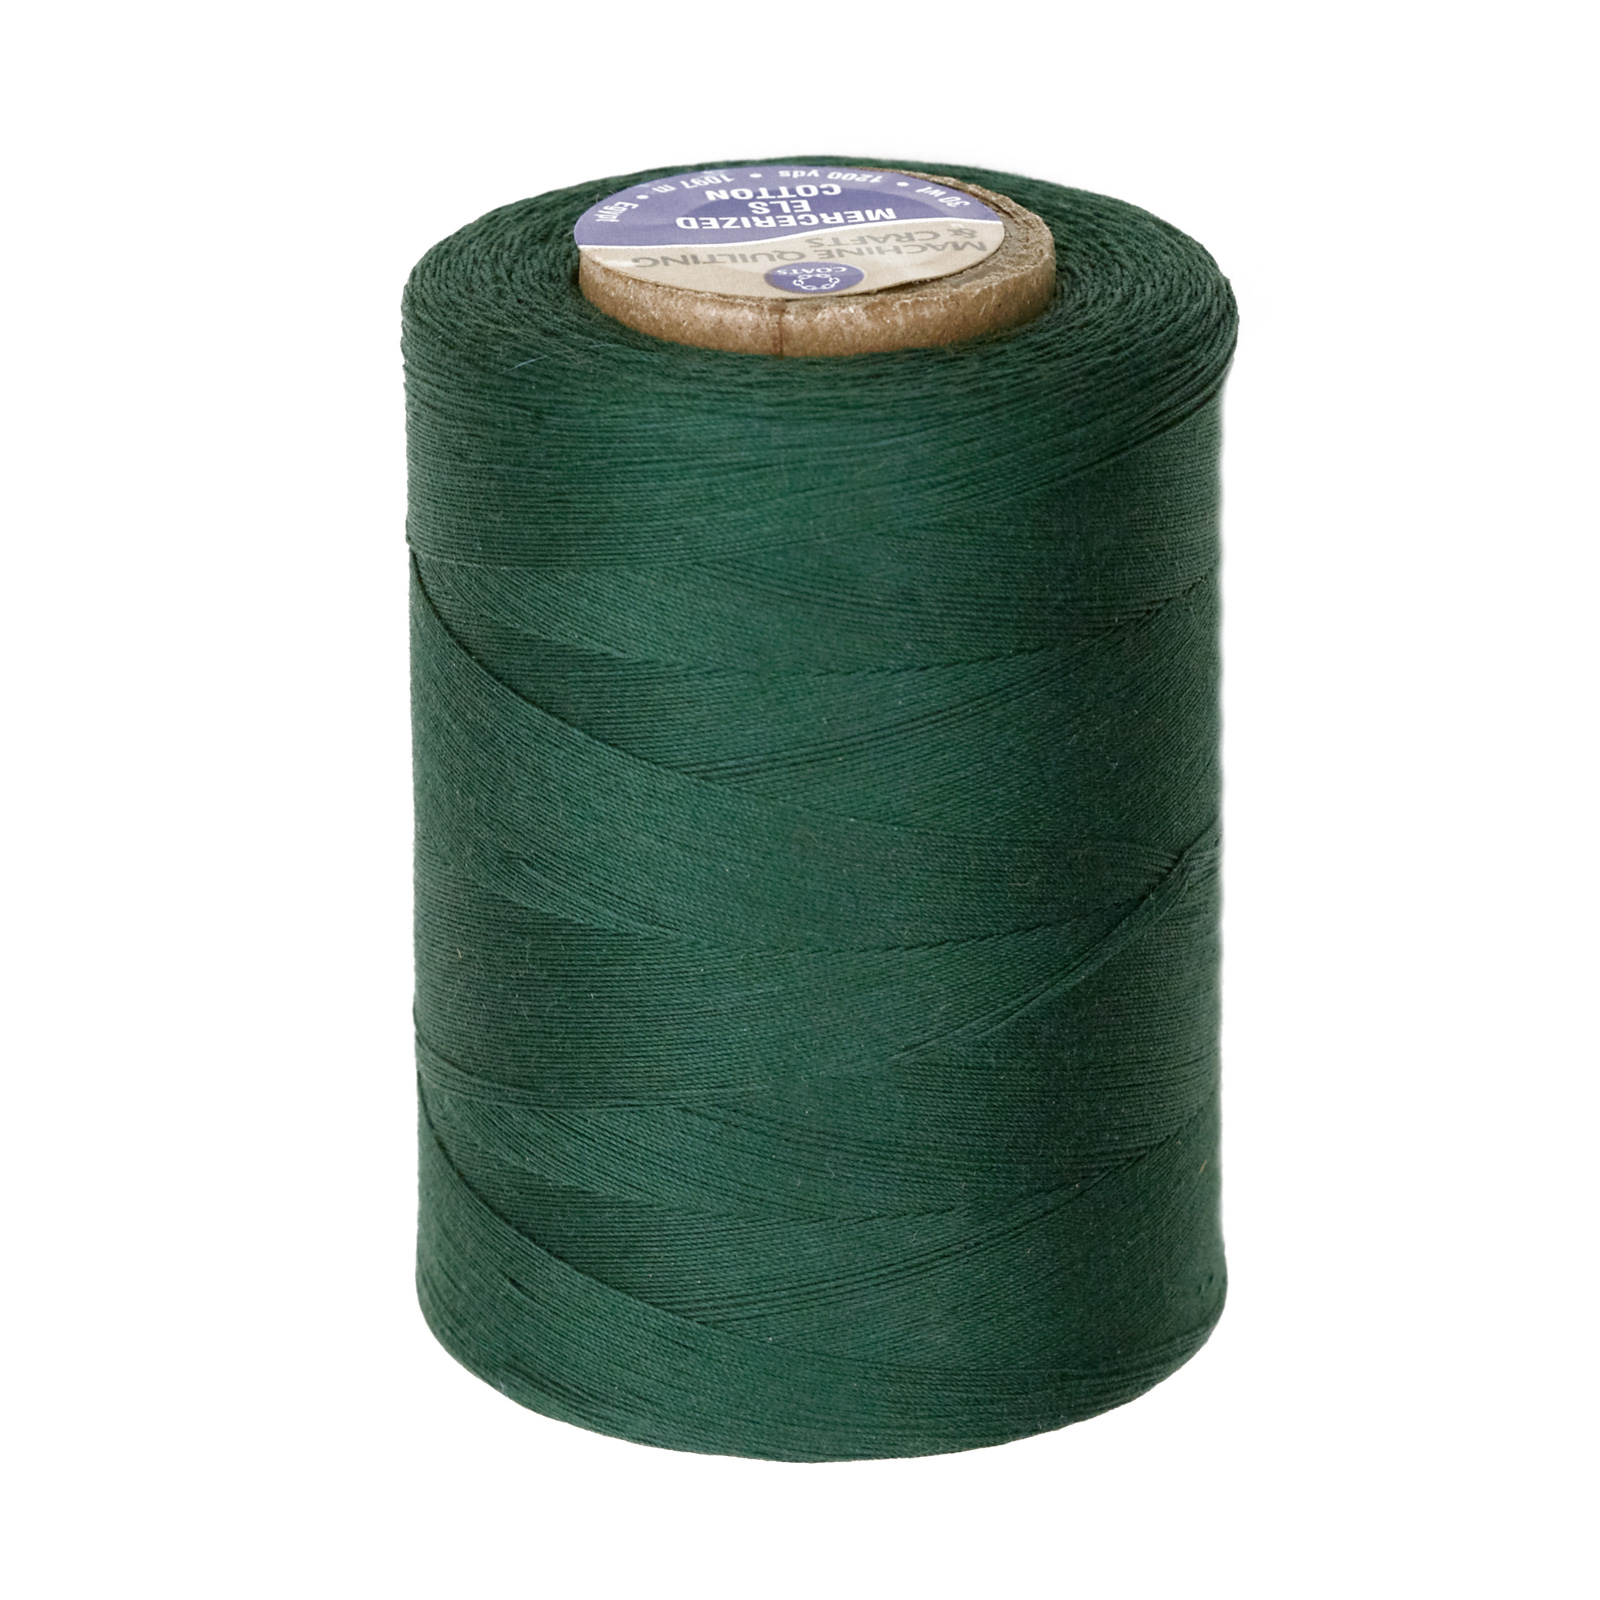 Coats & Clark Star Mercerized Cotton Quilting Thread 1200 Yd. Forest Green by Coats & Clark in USA